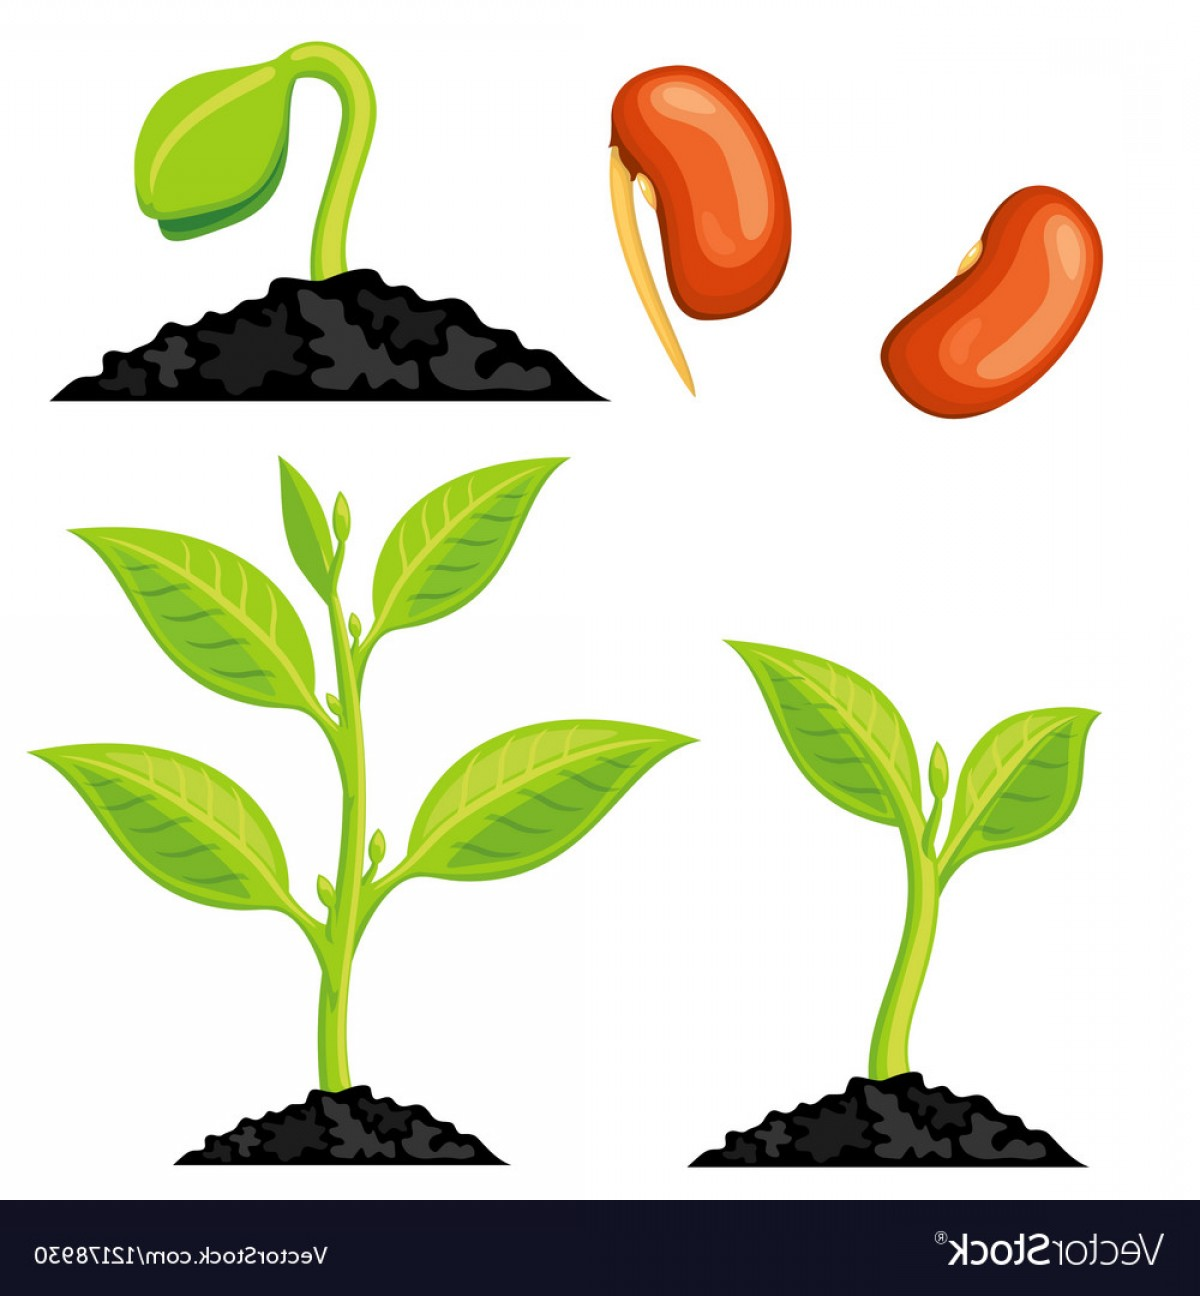 Seed Flower Vectors: Plant Growth Stages From Seed To Sprout Vector